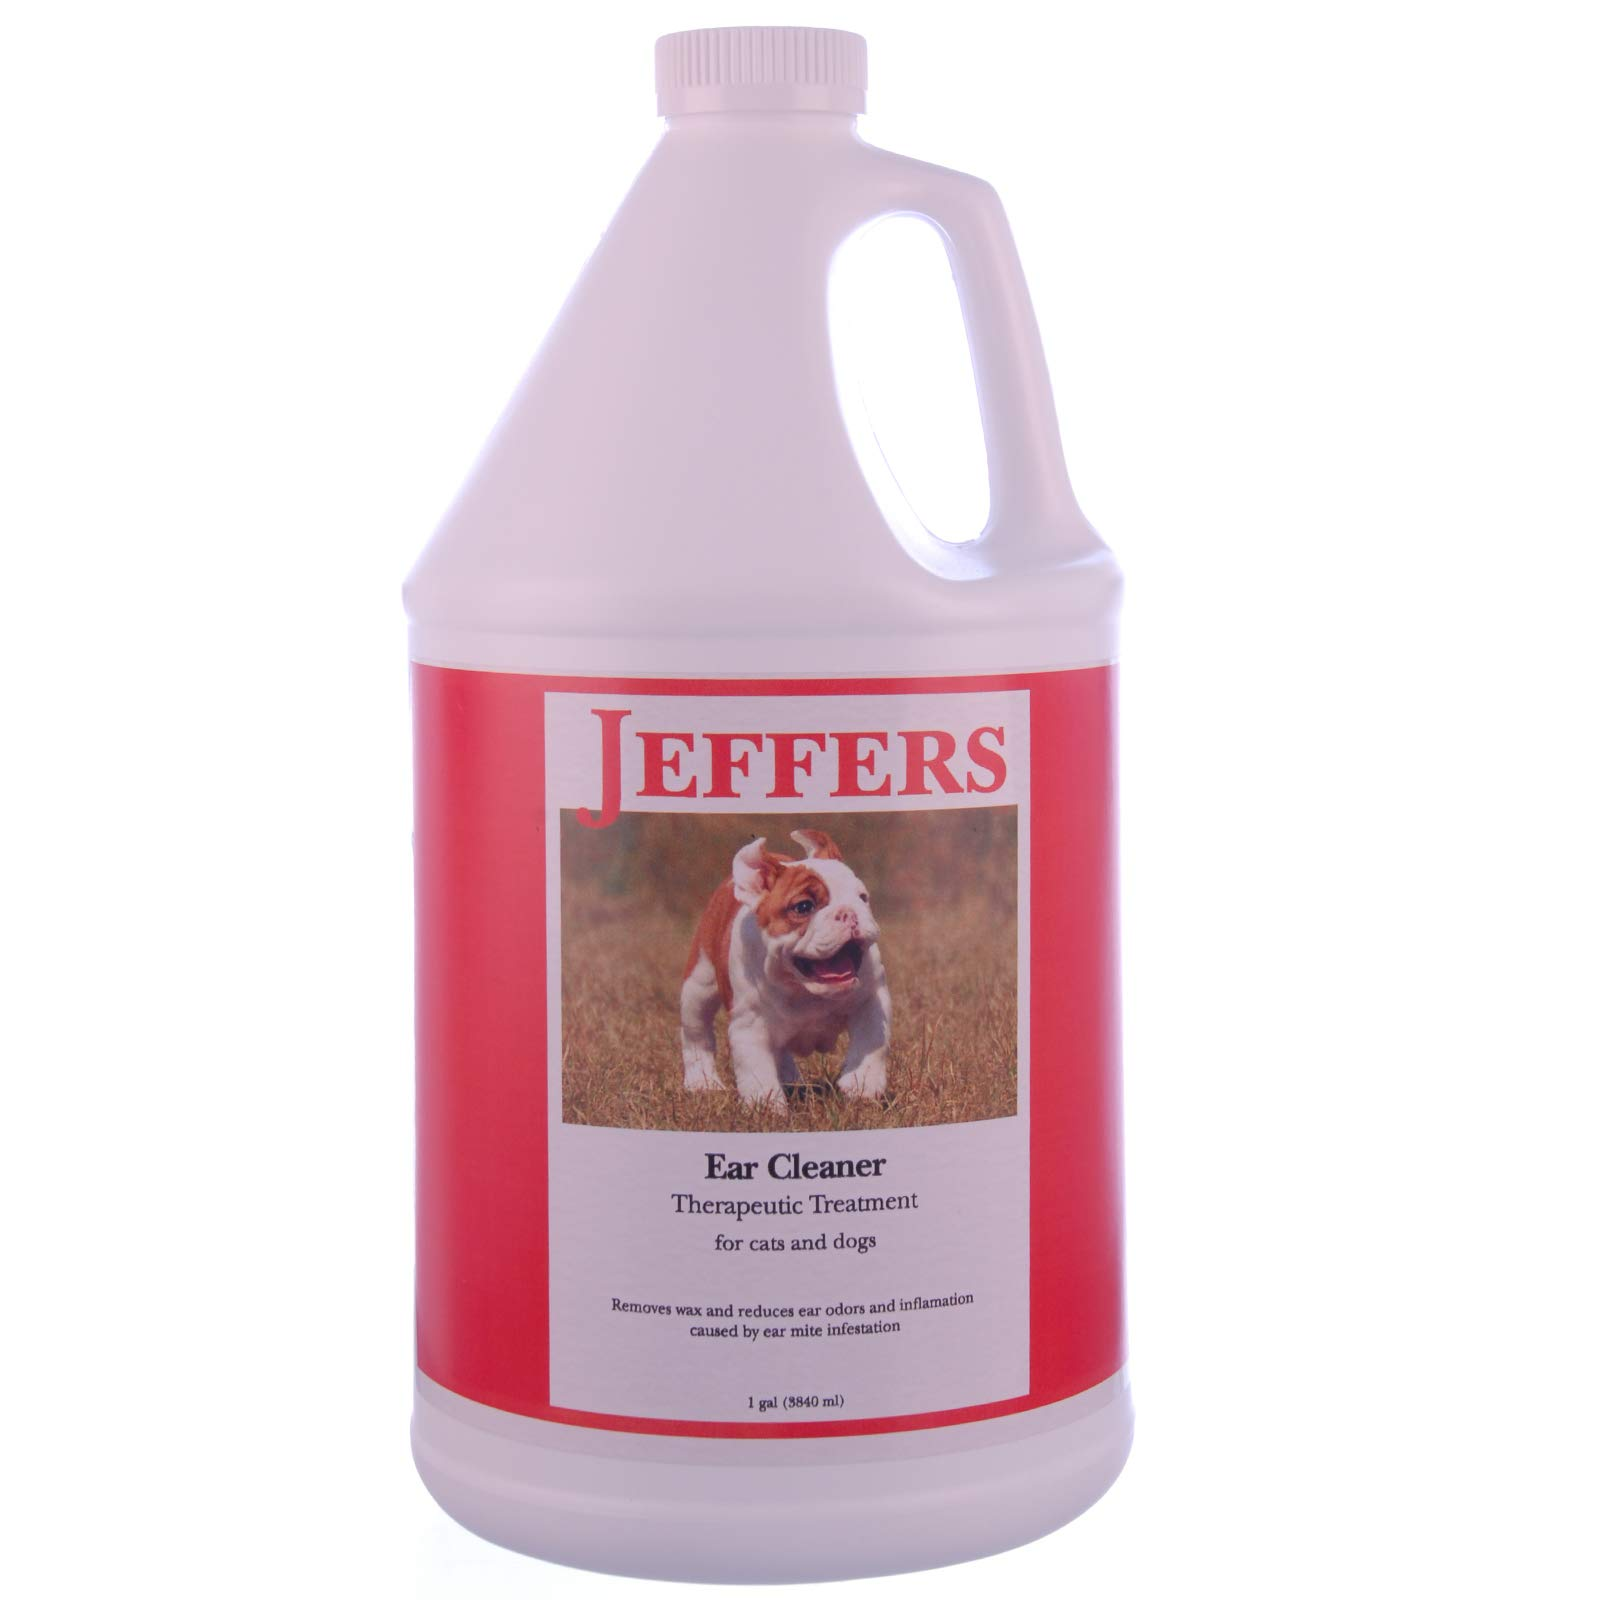 Jeffers Ear Cleaner and Therapeutic Treatment, Gallon by Jeffers